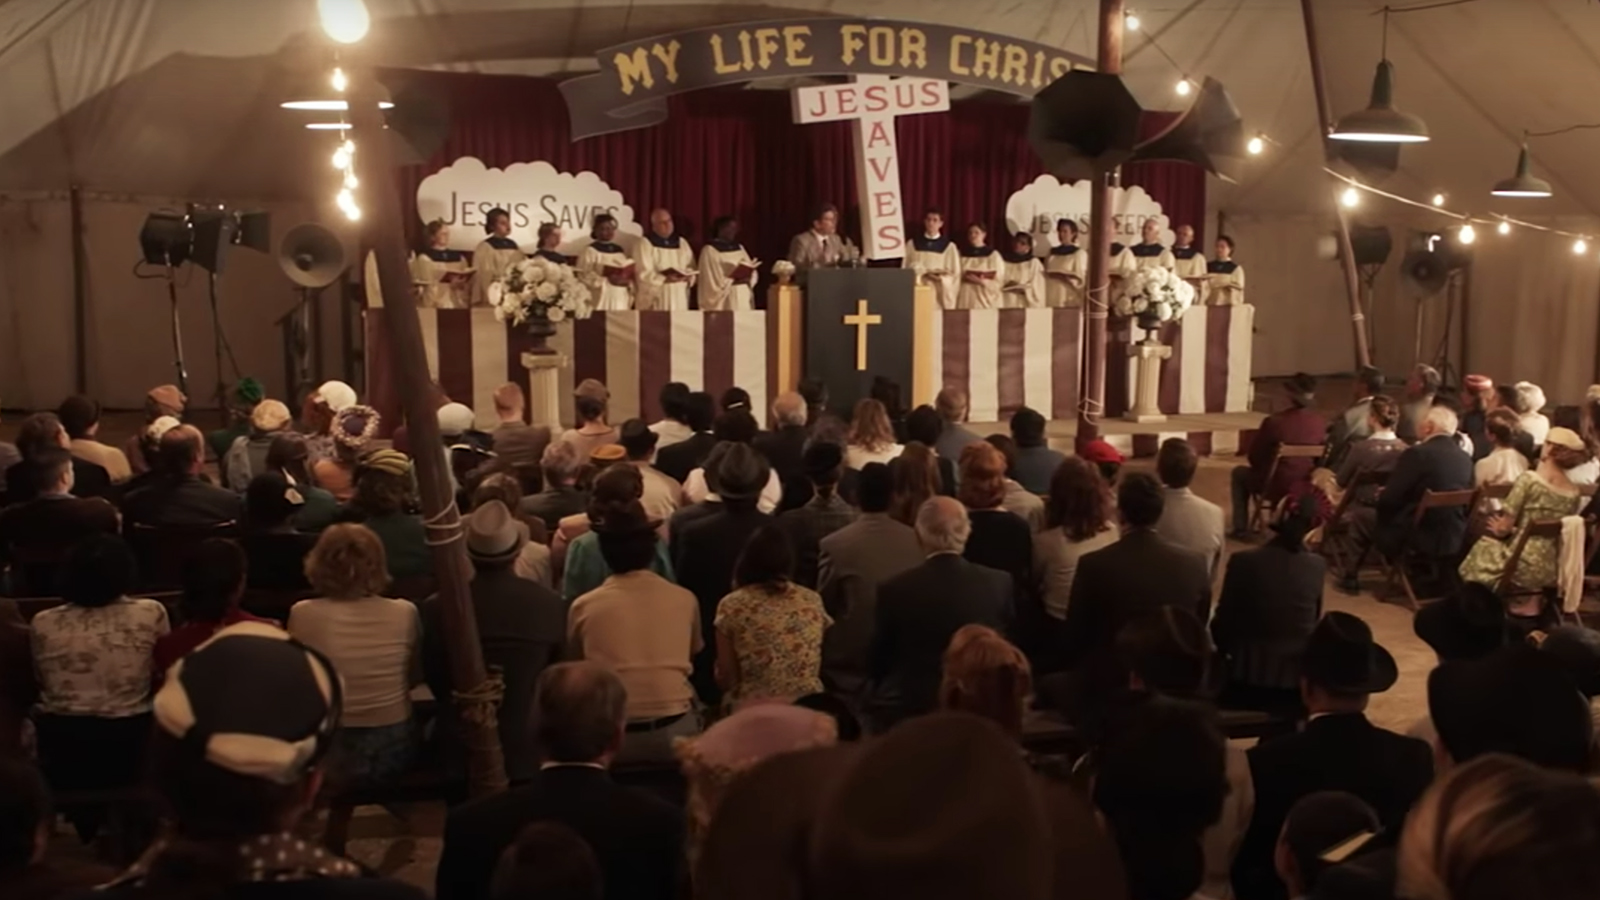 """Billy Graham is played by his grandson Will Graham in a revival scene from """"Unbroken: Path to Redemption."""" Photo courtesy of WTA Group/Universal 1440 Entertainment"""